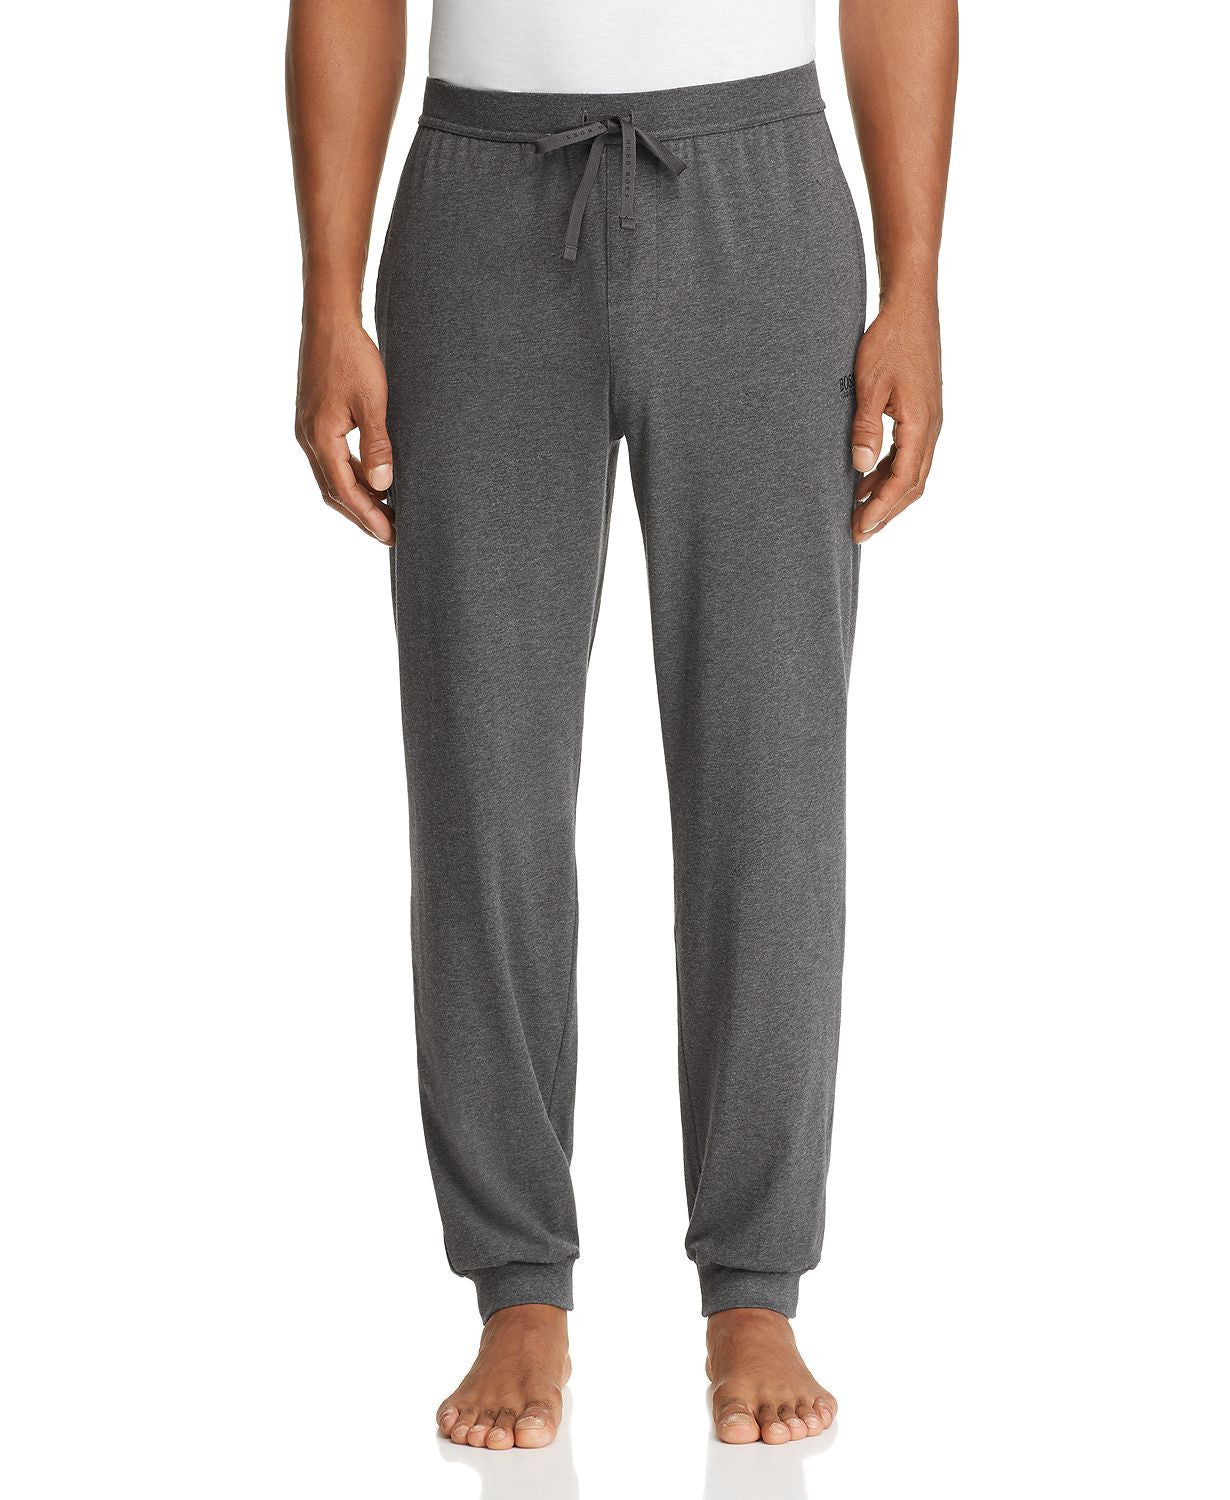 Hugo Boss Stretch Cotton Lounge Pants in Gray